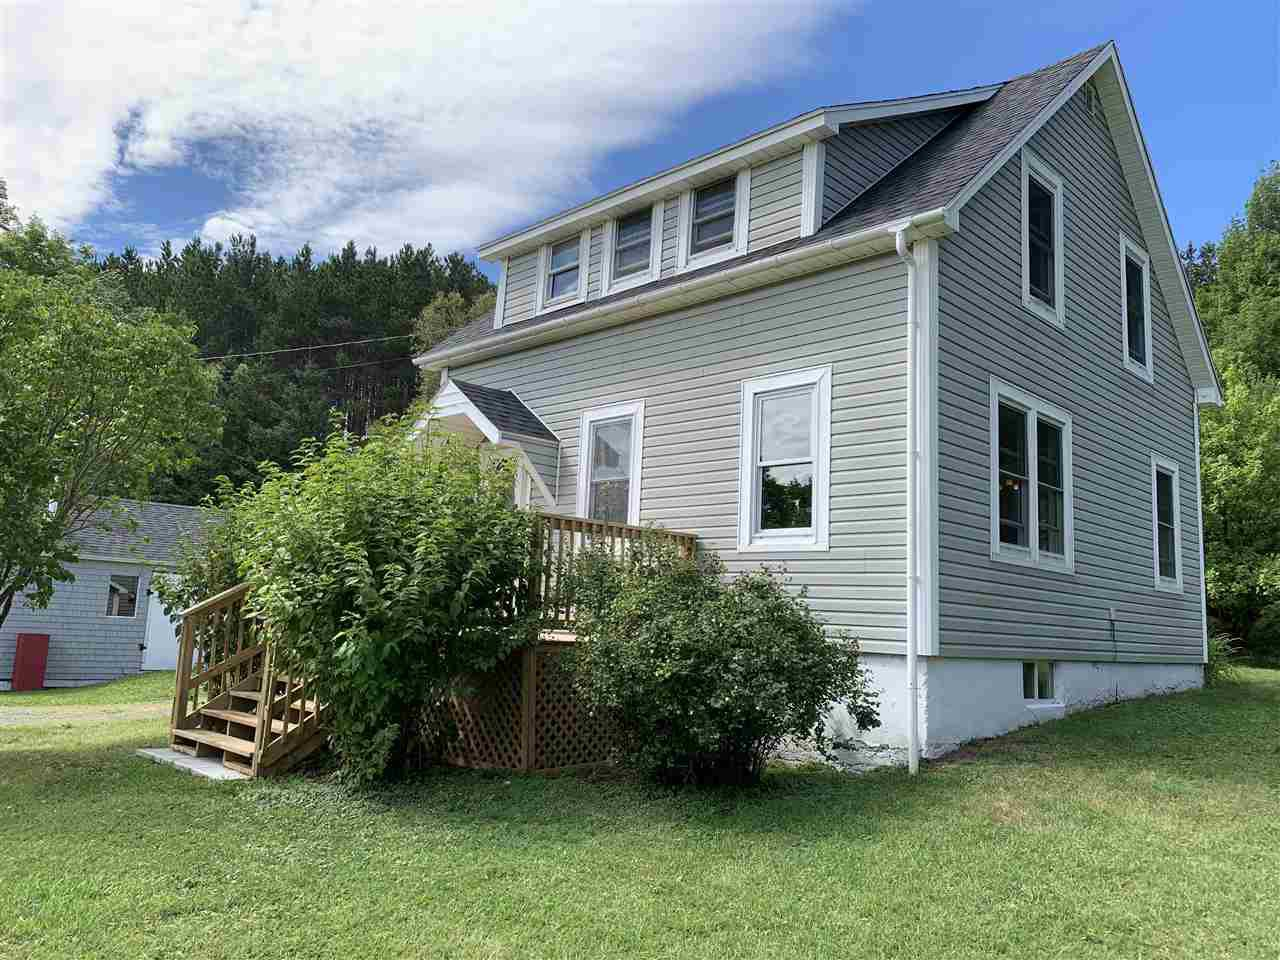 Main Photo: 2291 Highway 4 in Salt Springs: 108-Rural Pictou County Residential for sale (Northern Region)  : MLS®# 202018091